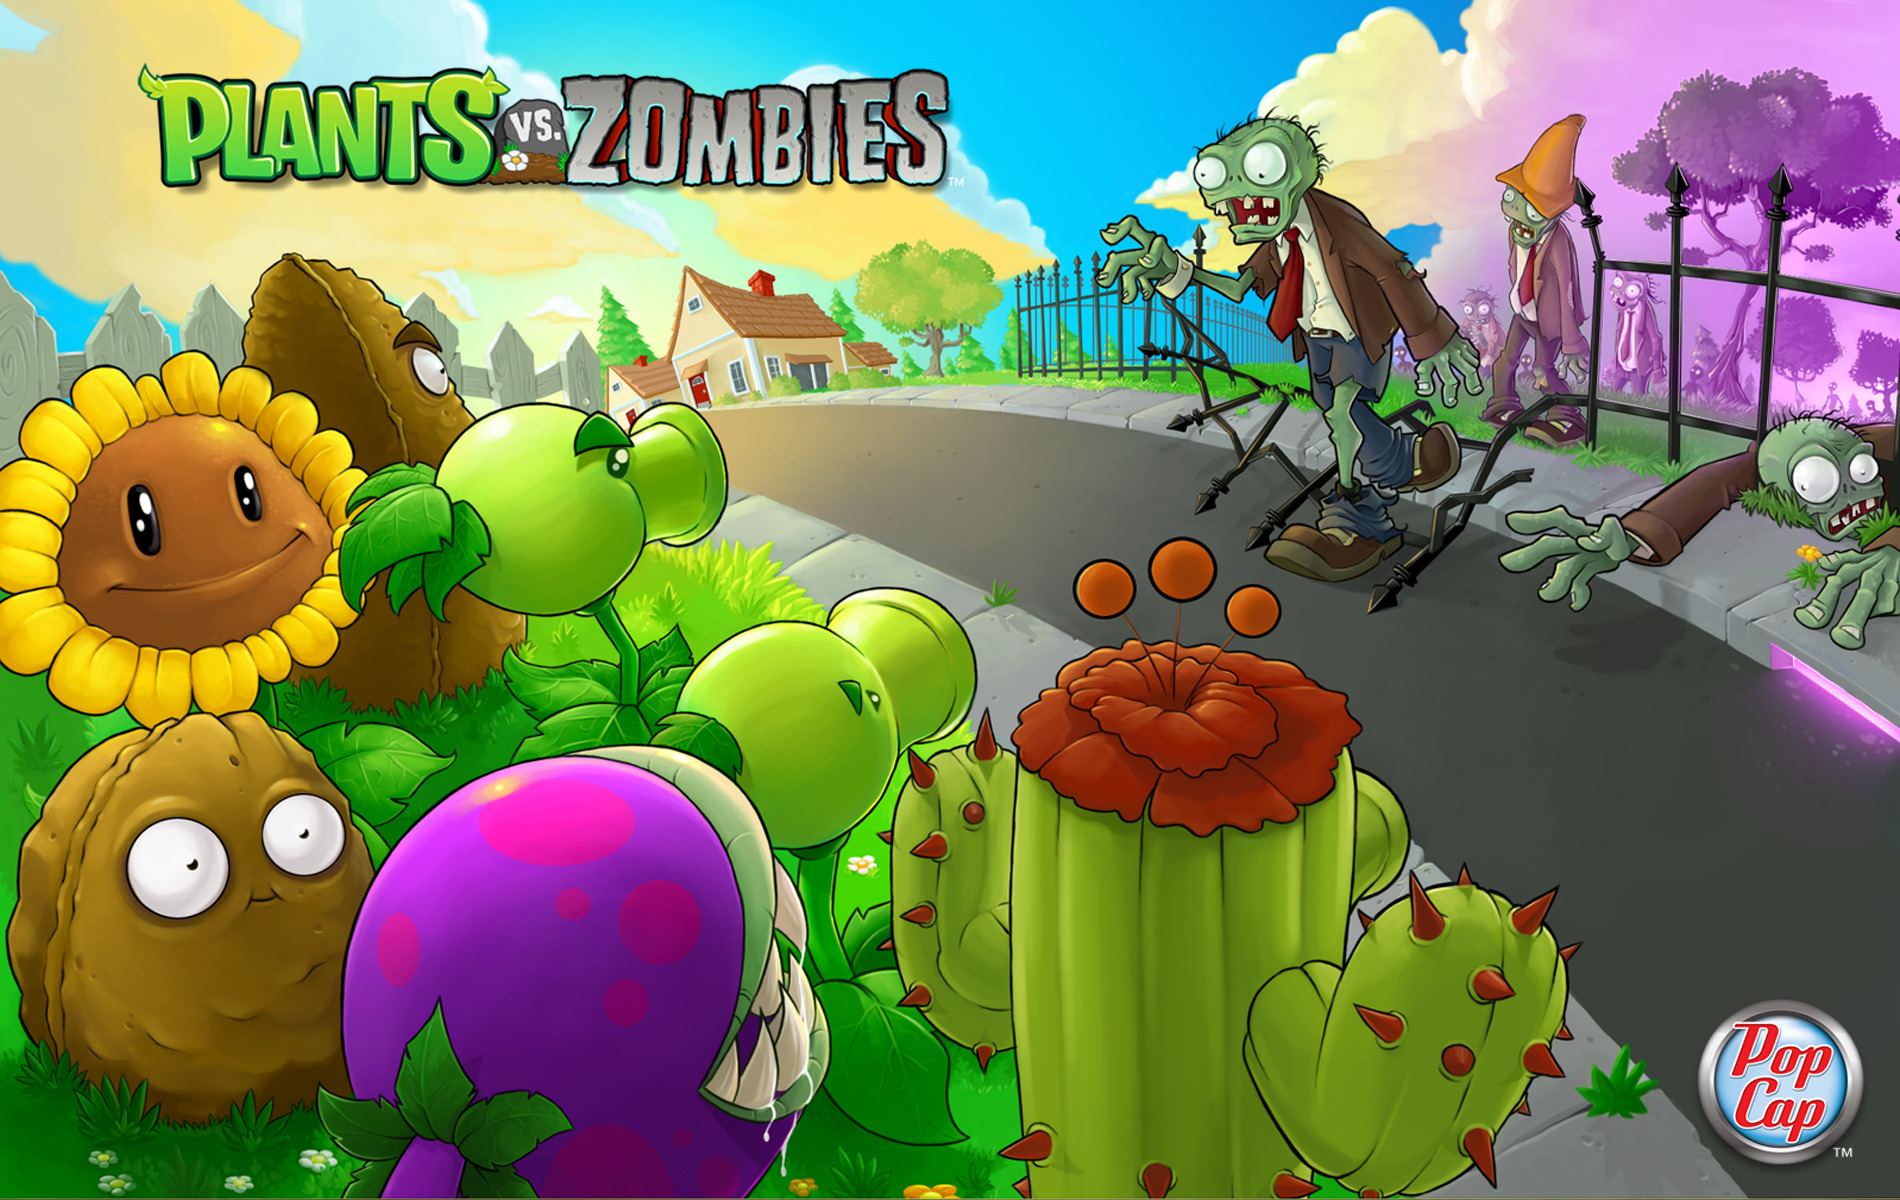 Арт к игре Plants vs Zombies